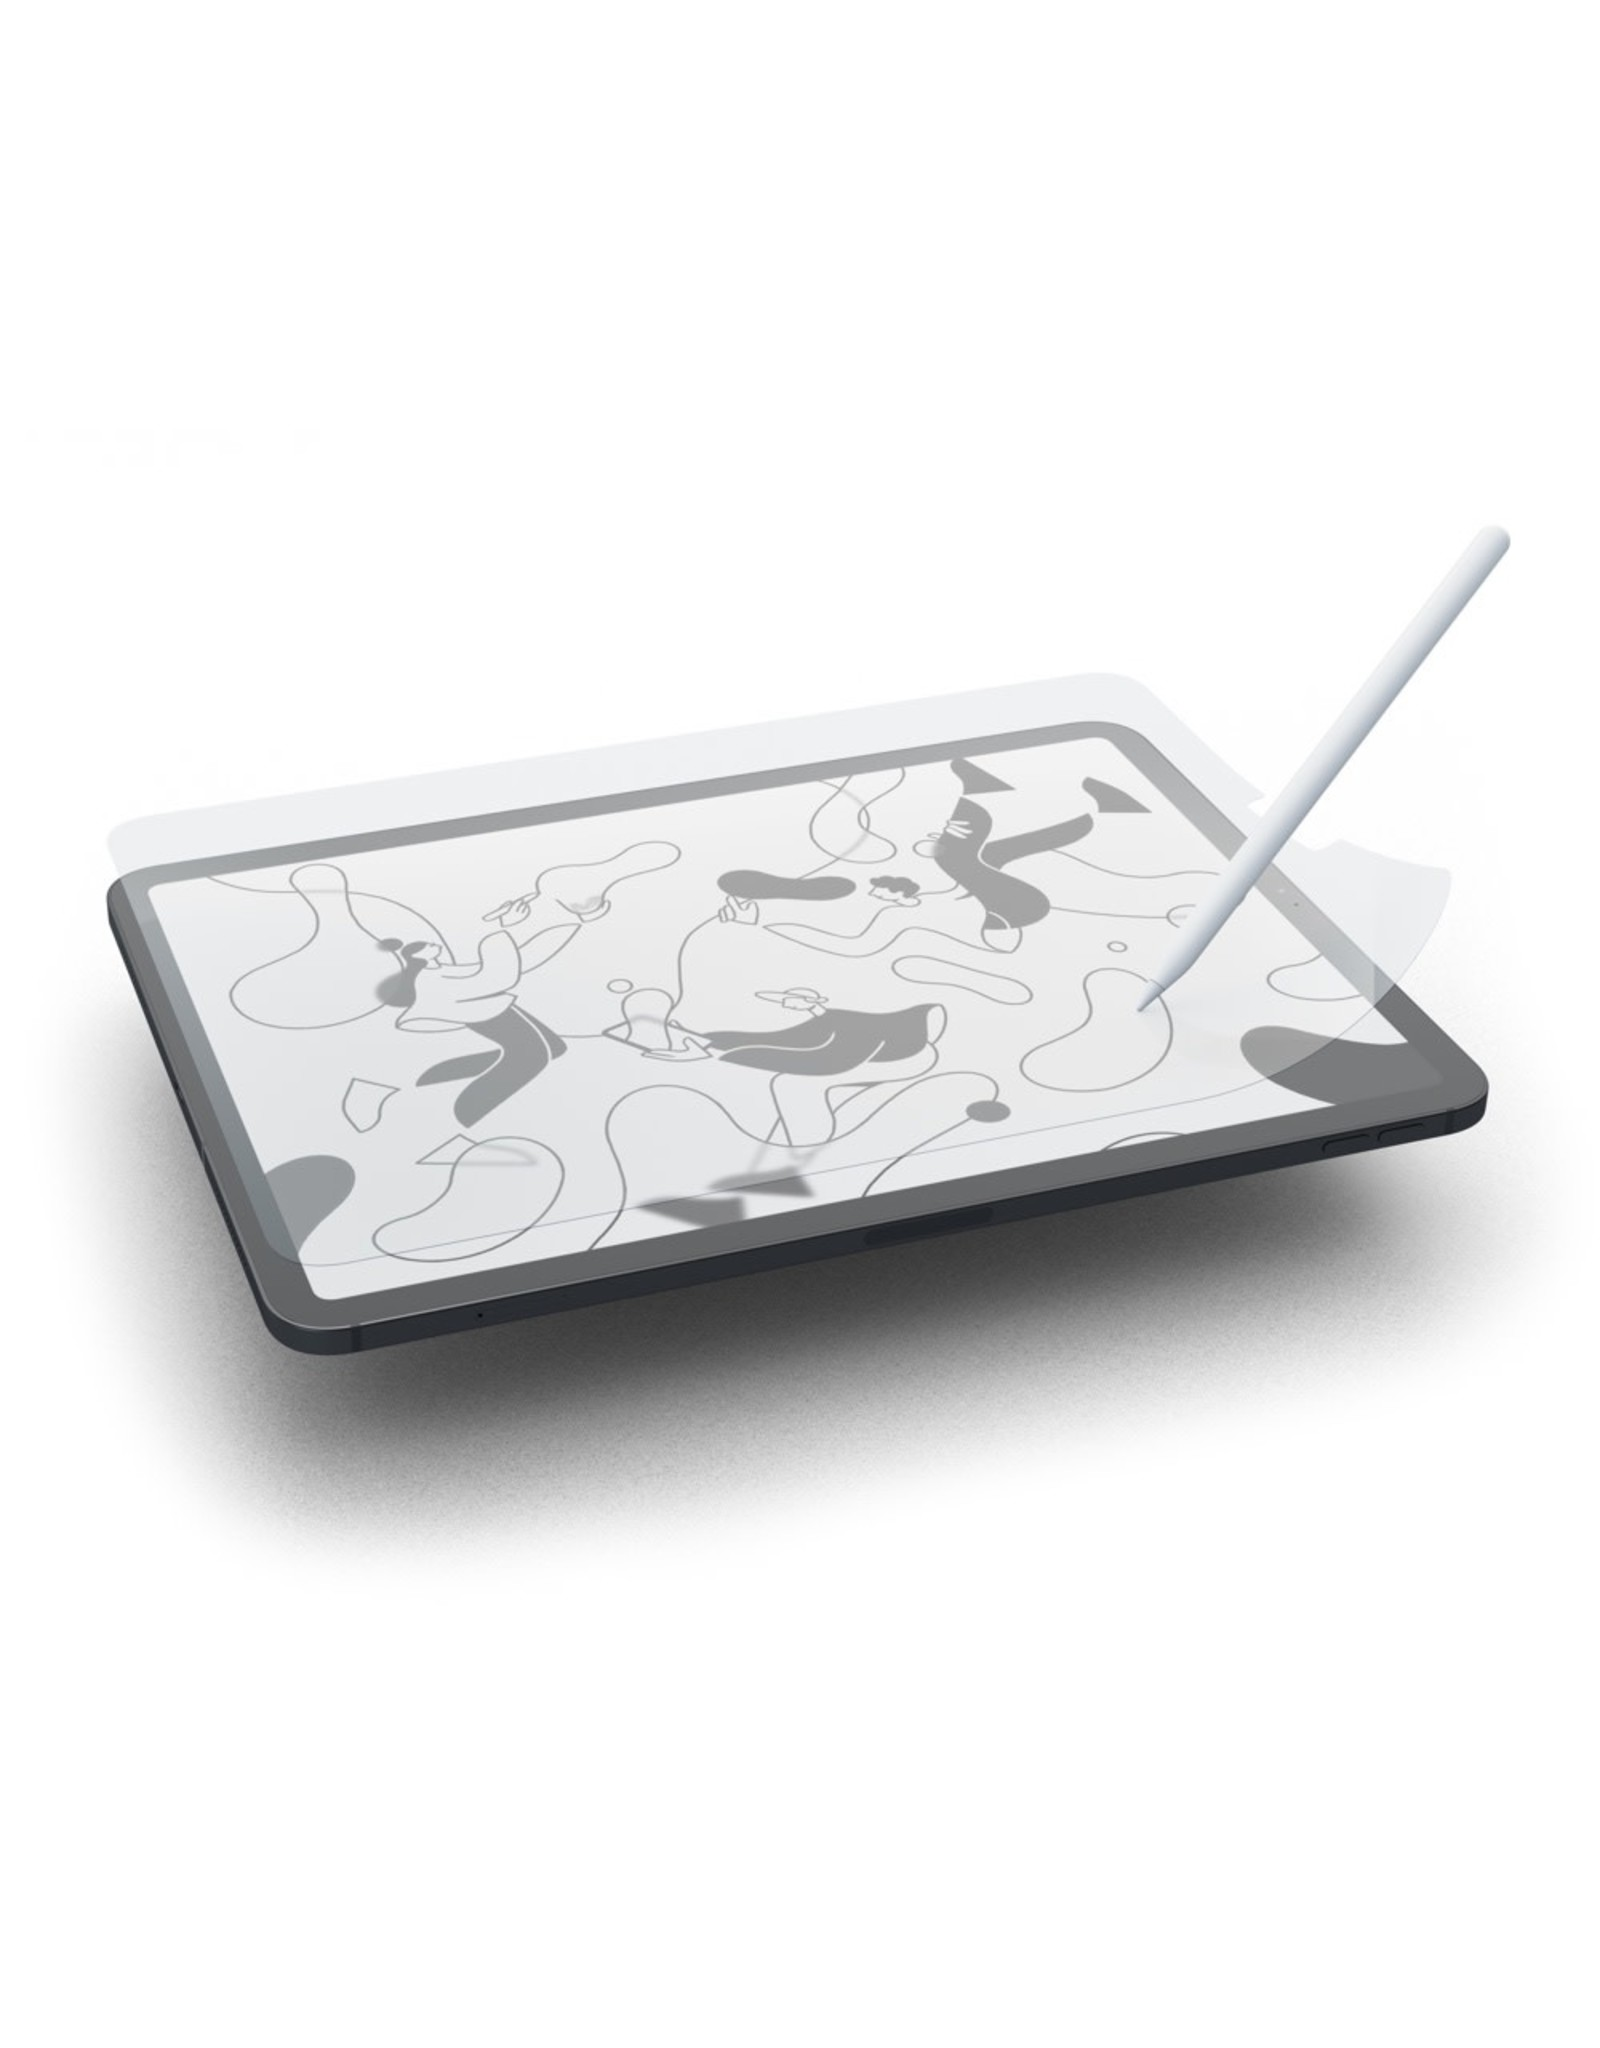 """Paperlike Paperlike Screen Protector iPad 10.2"""" (2019) for Writing & Drawing (x2 pack)"""